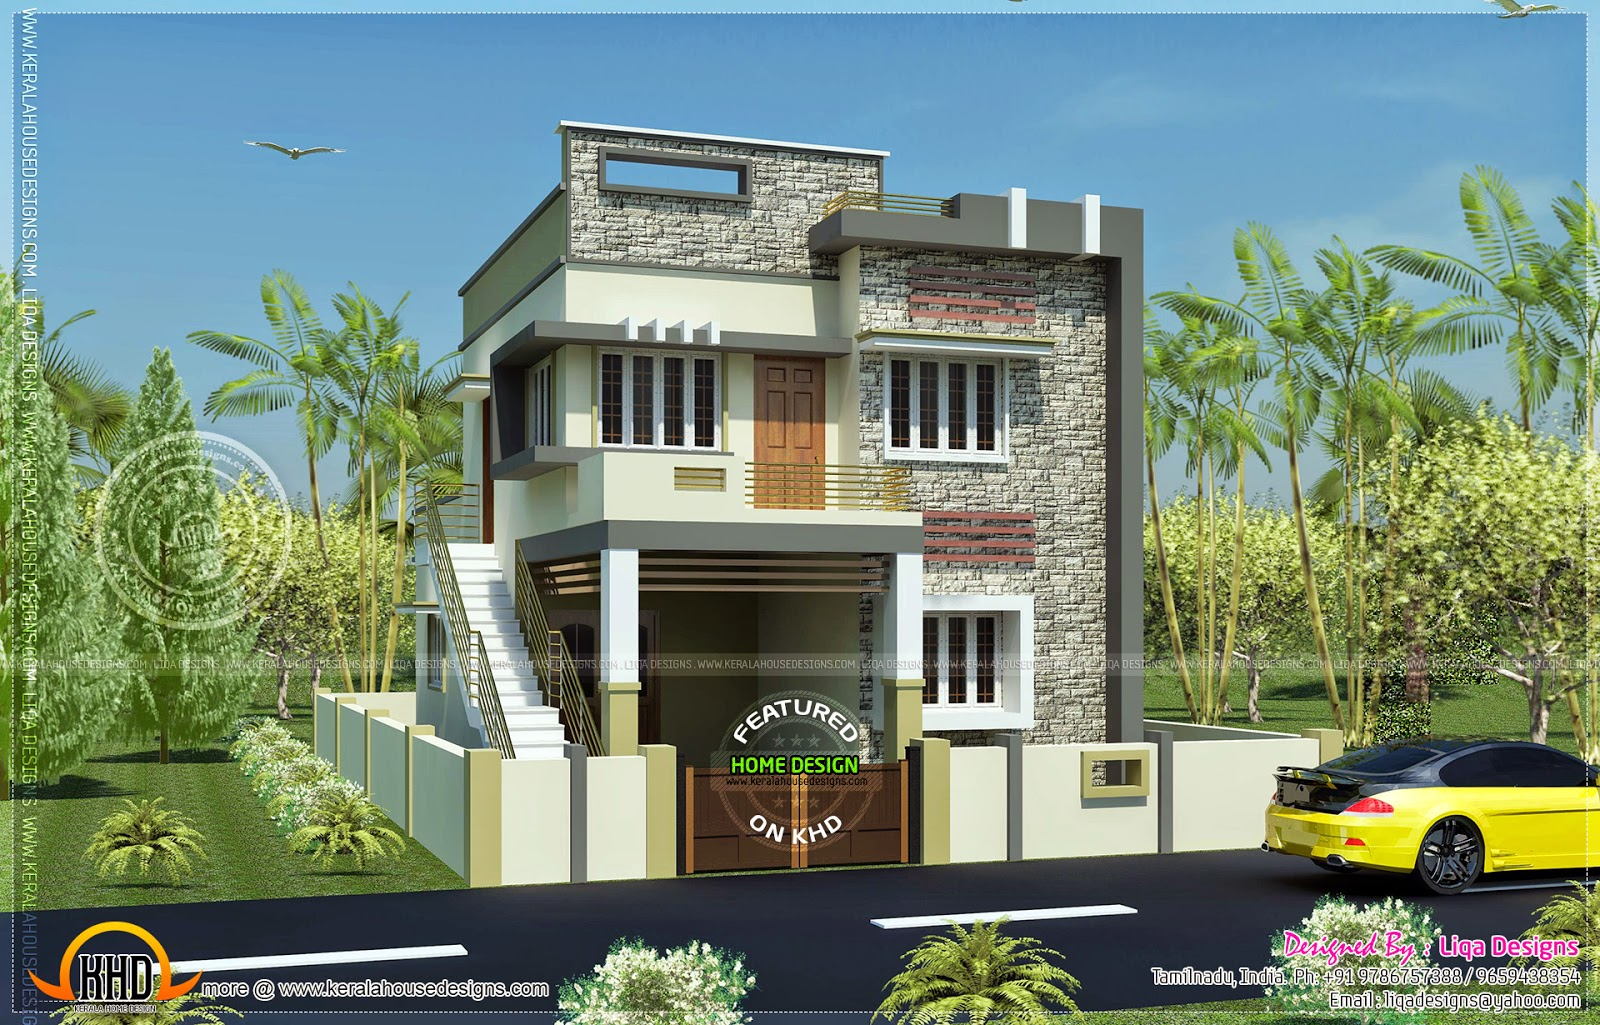 1289 Sq Ft 4 Bedroom Modern Tamil House Design Kerala Home Design And Floor Plans